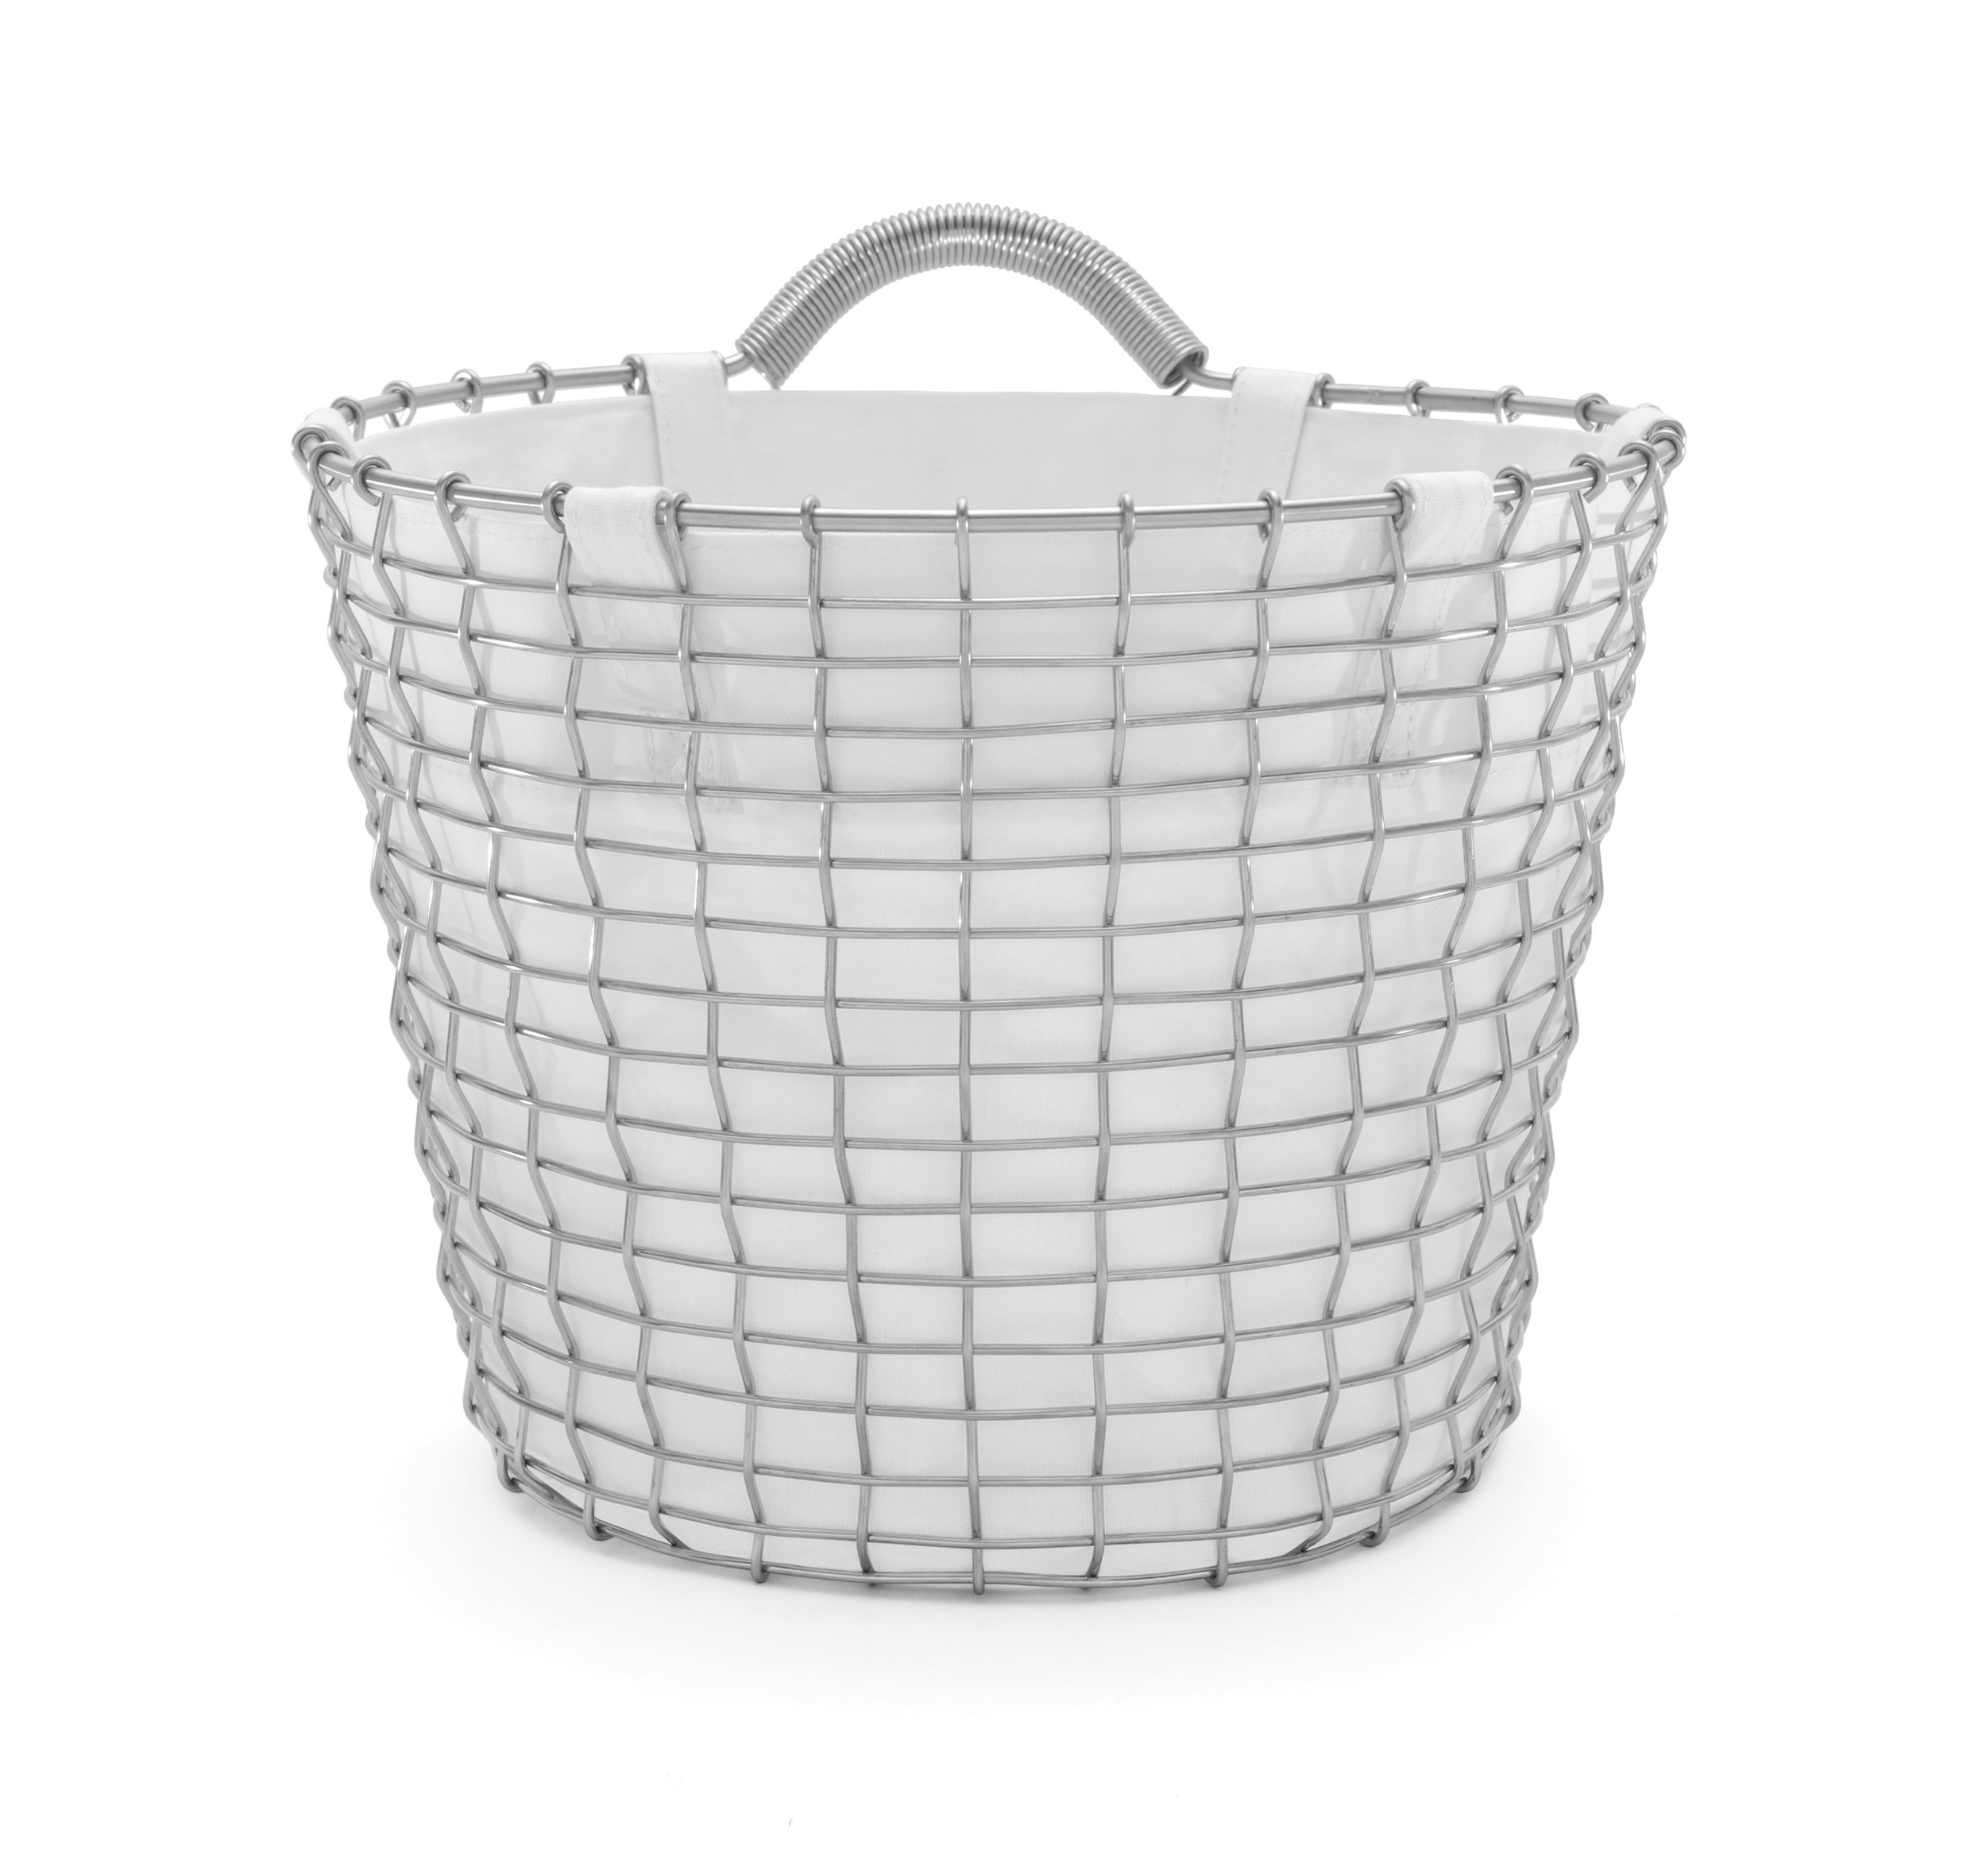 Basket-Liner_Stainless-Steel_White.jpg